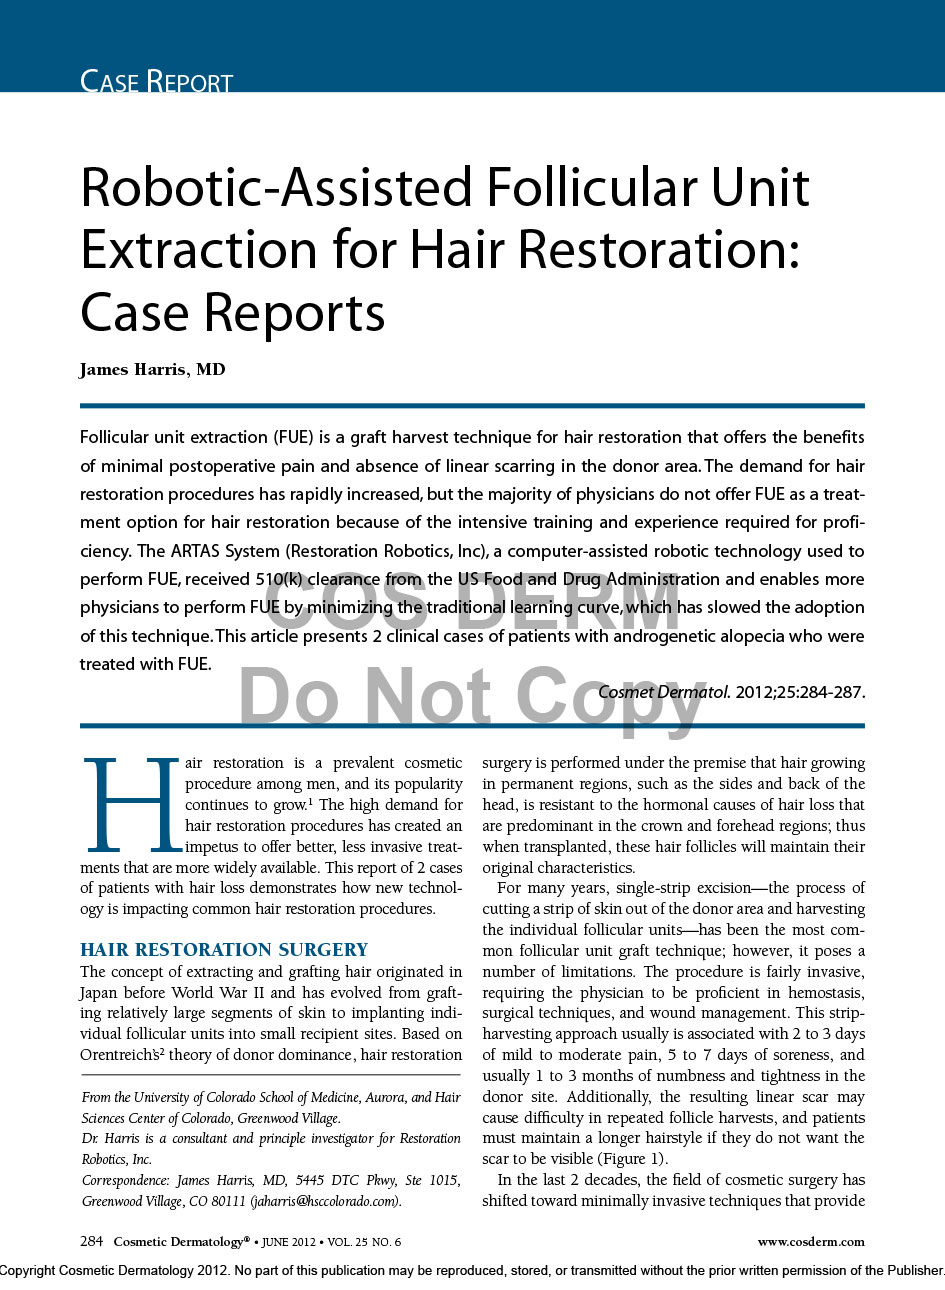 Dr. Jim Harris Case Report Cosmetic Dermatology June 2012 1